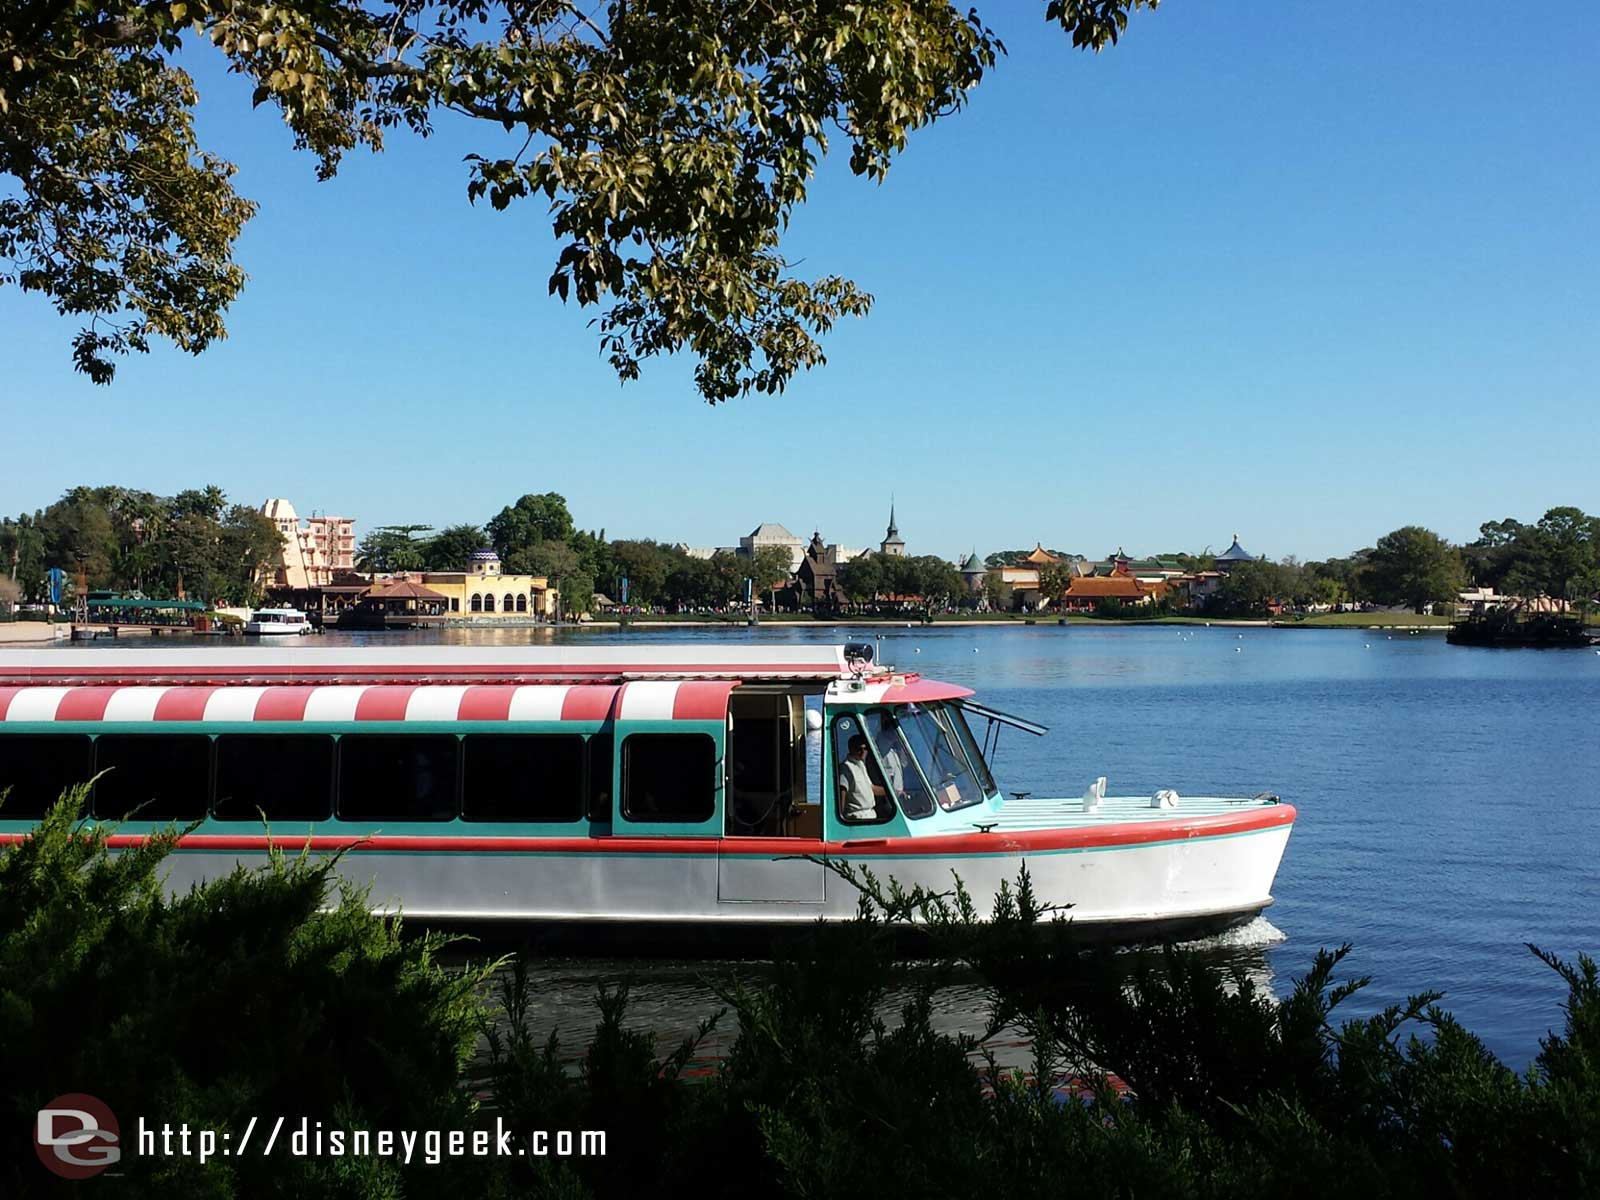 A friendship launch cruising by on World Showcase Lagoon #Epcot